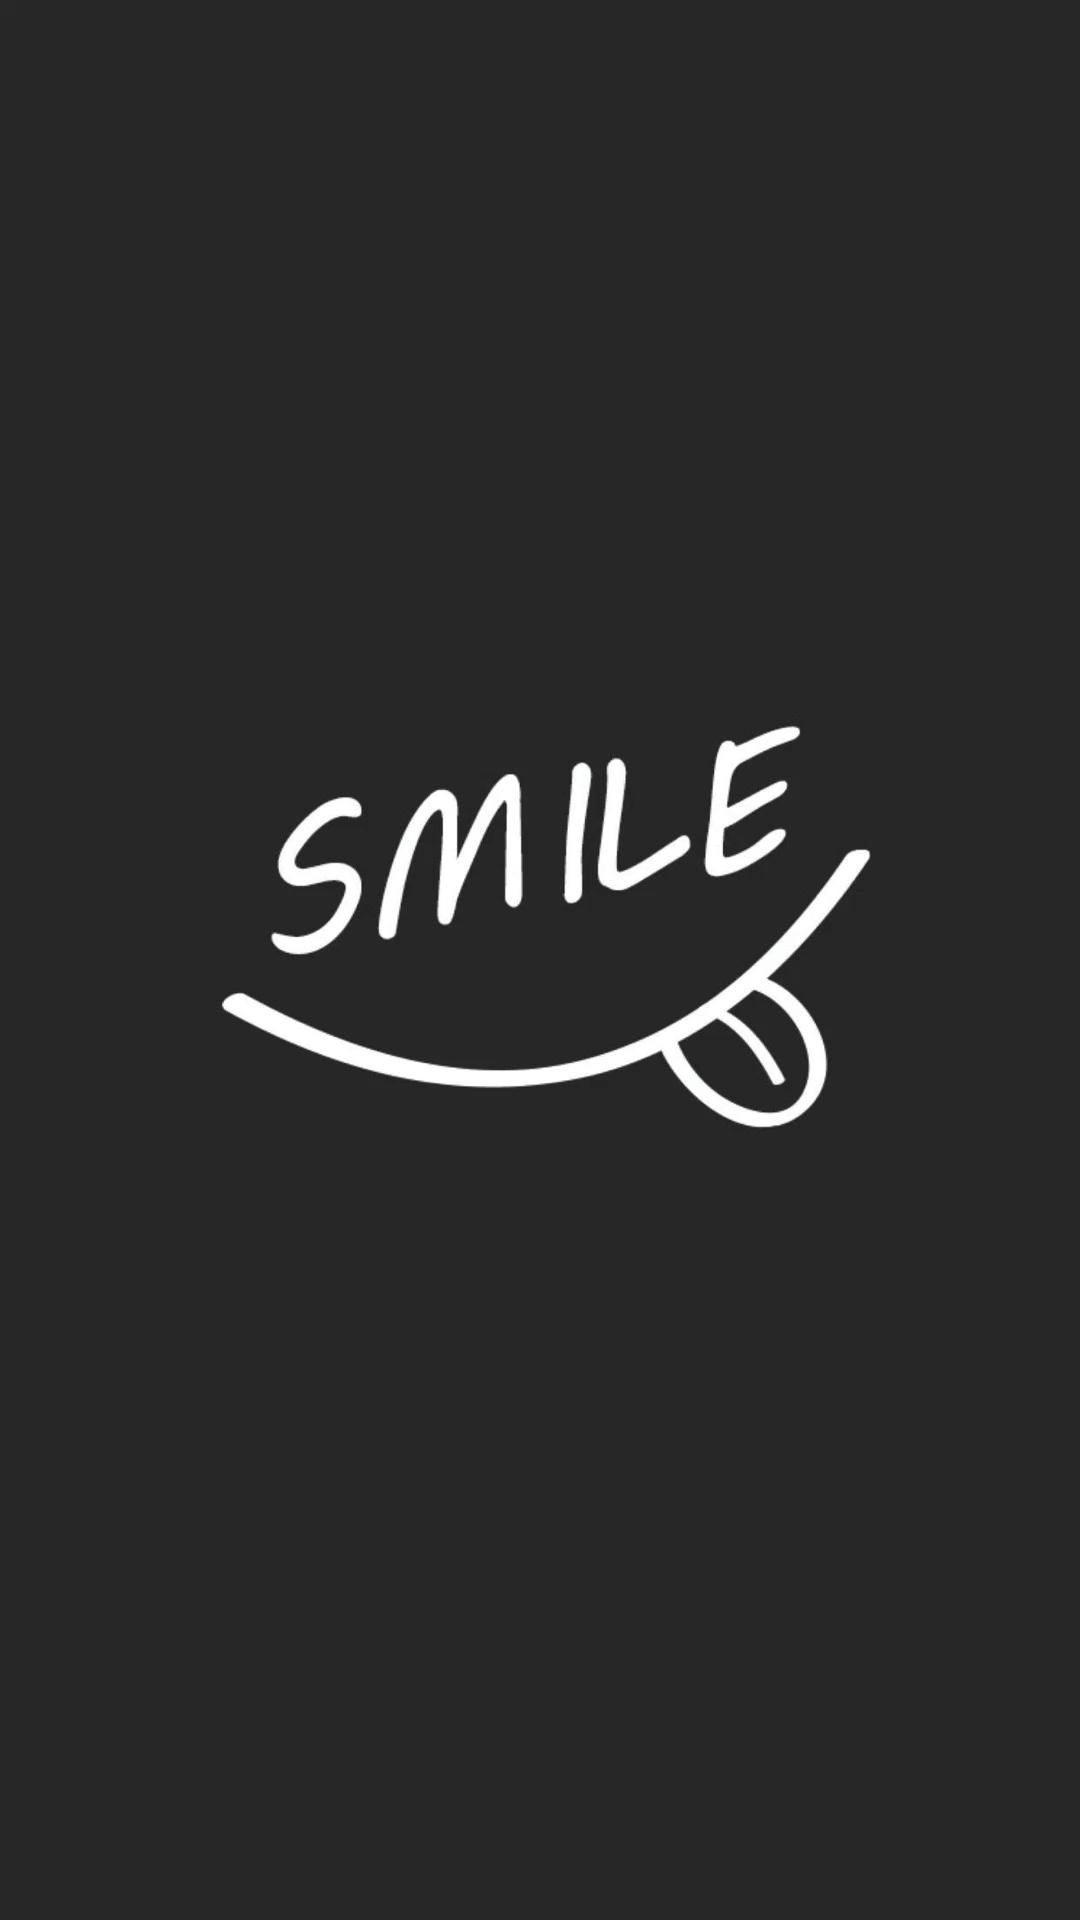 Smiley face aesthetic iPhone wallpapers